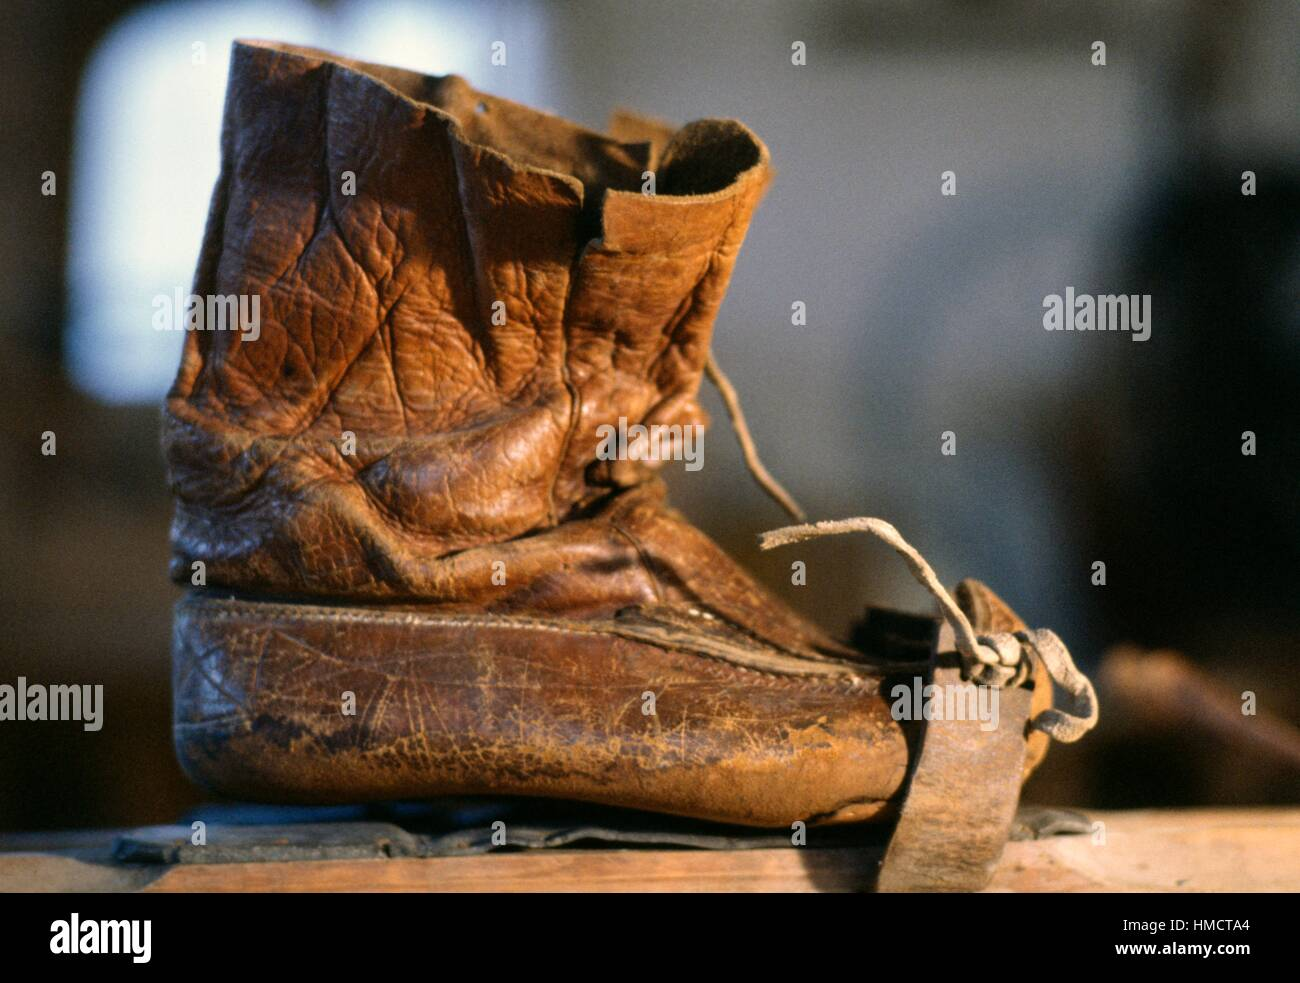 Sami (Laplander) boots with curved toes that allow them to be attached to skis or snowshoes, Rovaniemi, Finland. - Stock Image